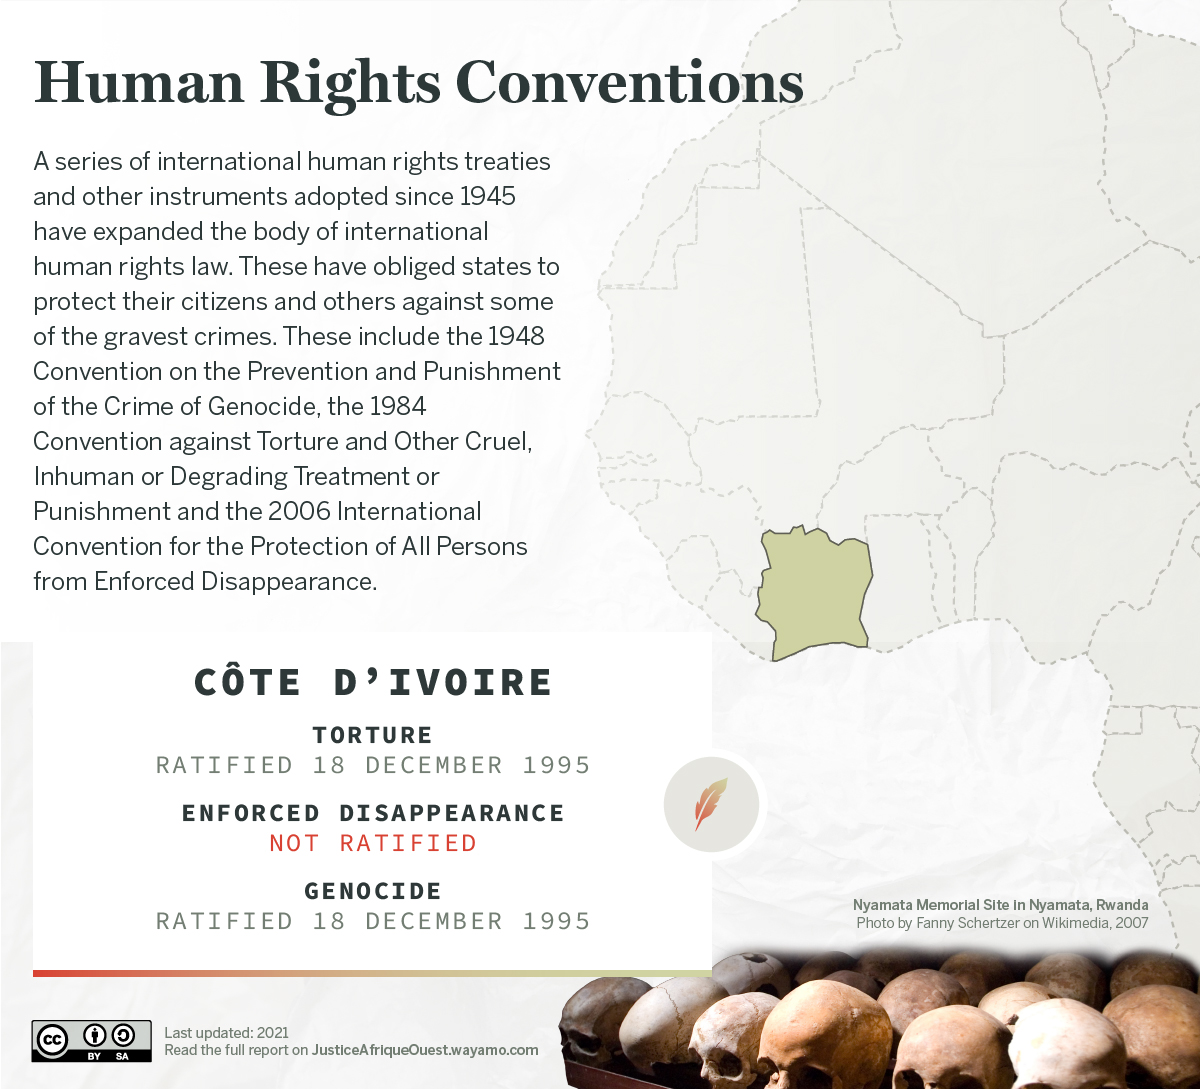 COTE D'IVOIRE_Human Rights Conventions_1. - Wayamo Foundation (CC BY-SA 4.0)jpg